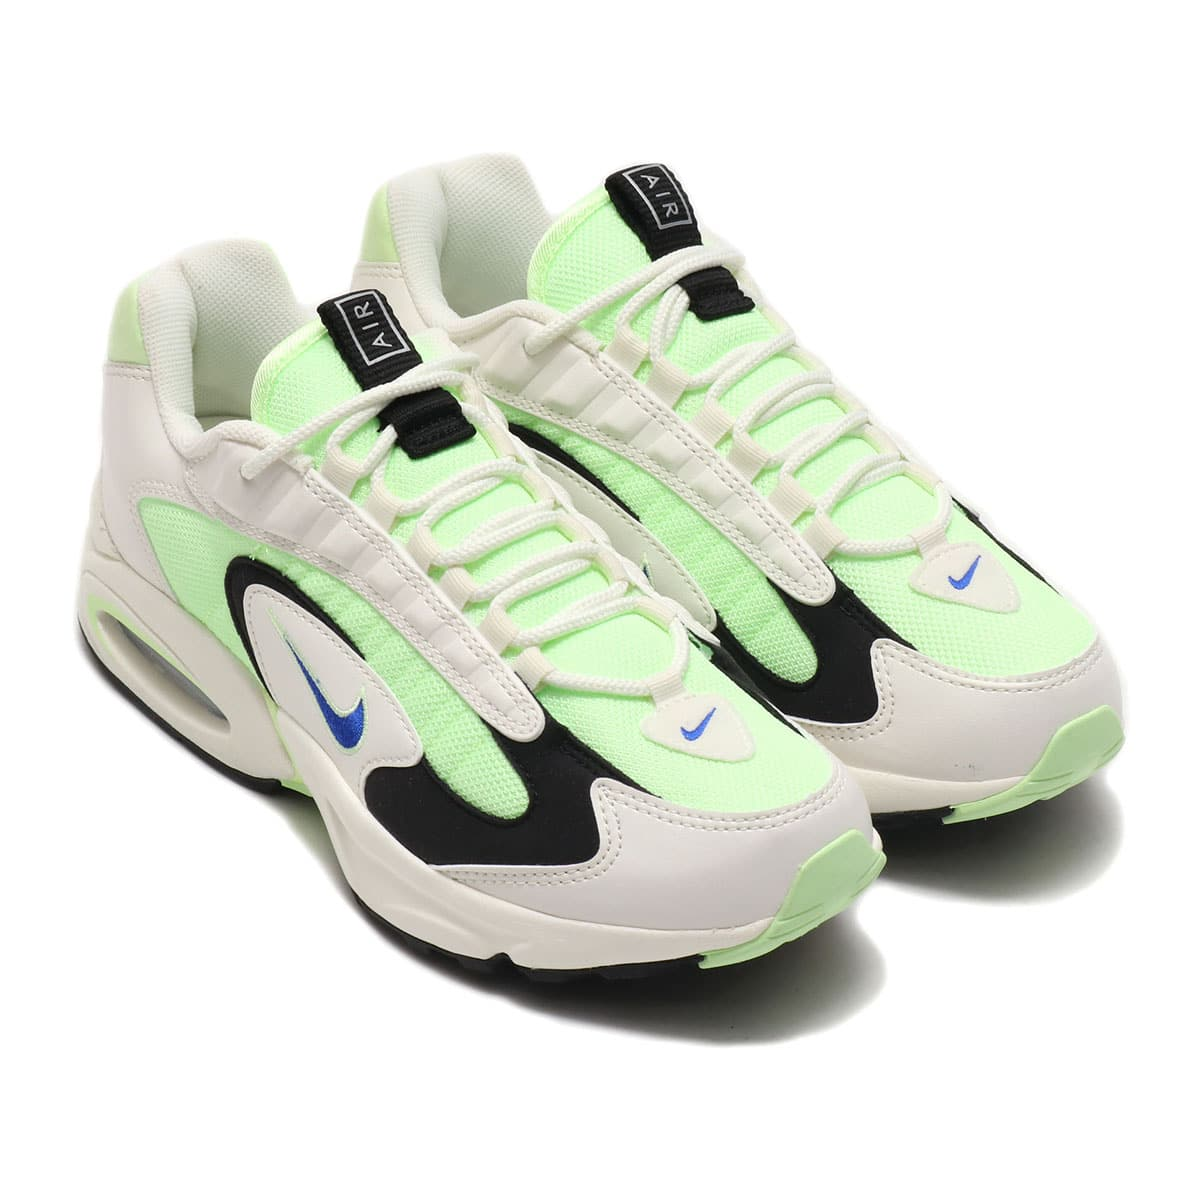 NIKE AIR MAX TRIAX BARELY VOLT/RACER BLUE-SAIL-BLACK 20SU-S_photo_large